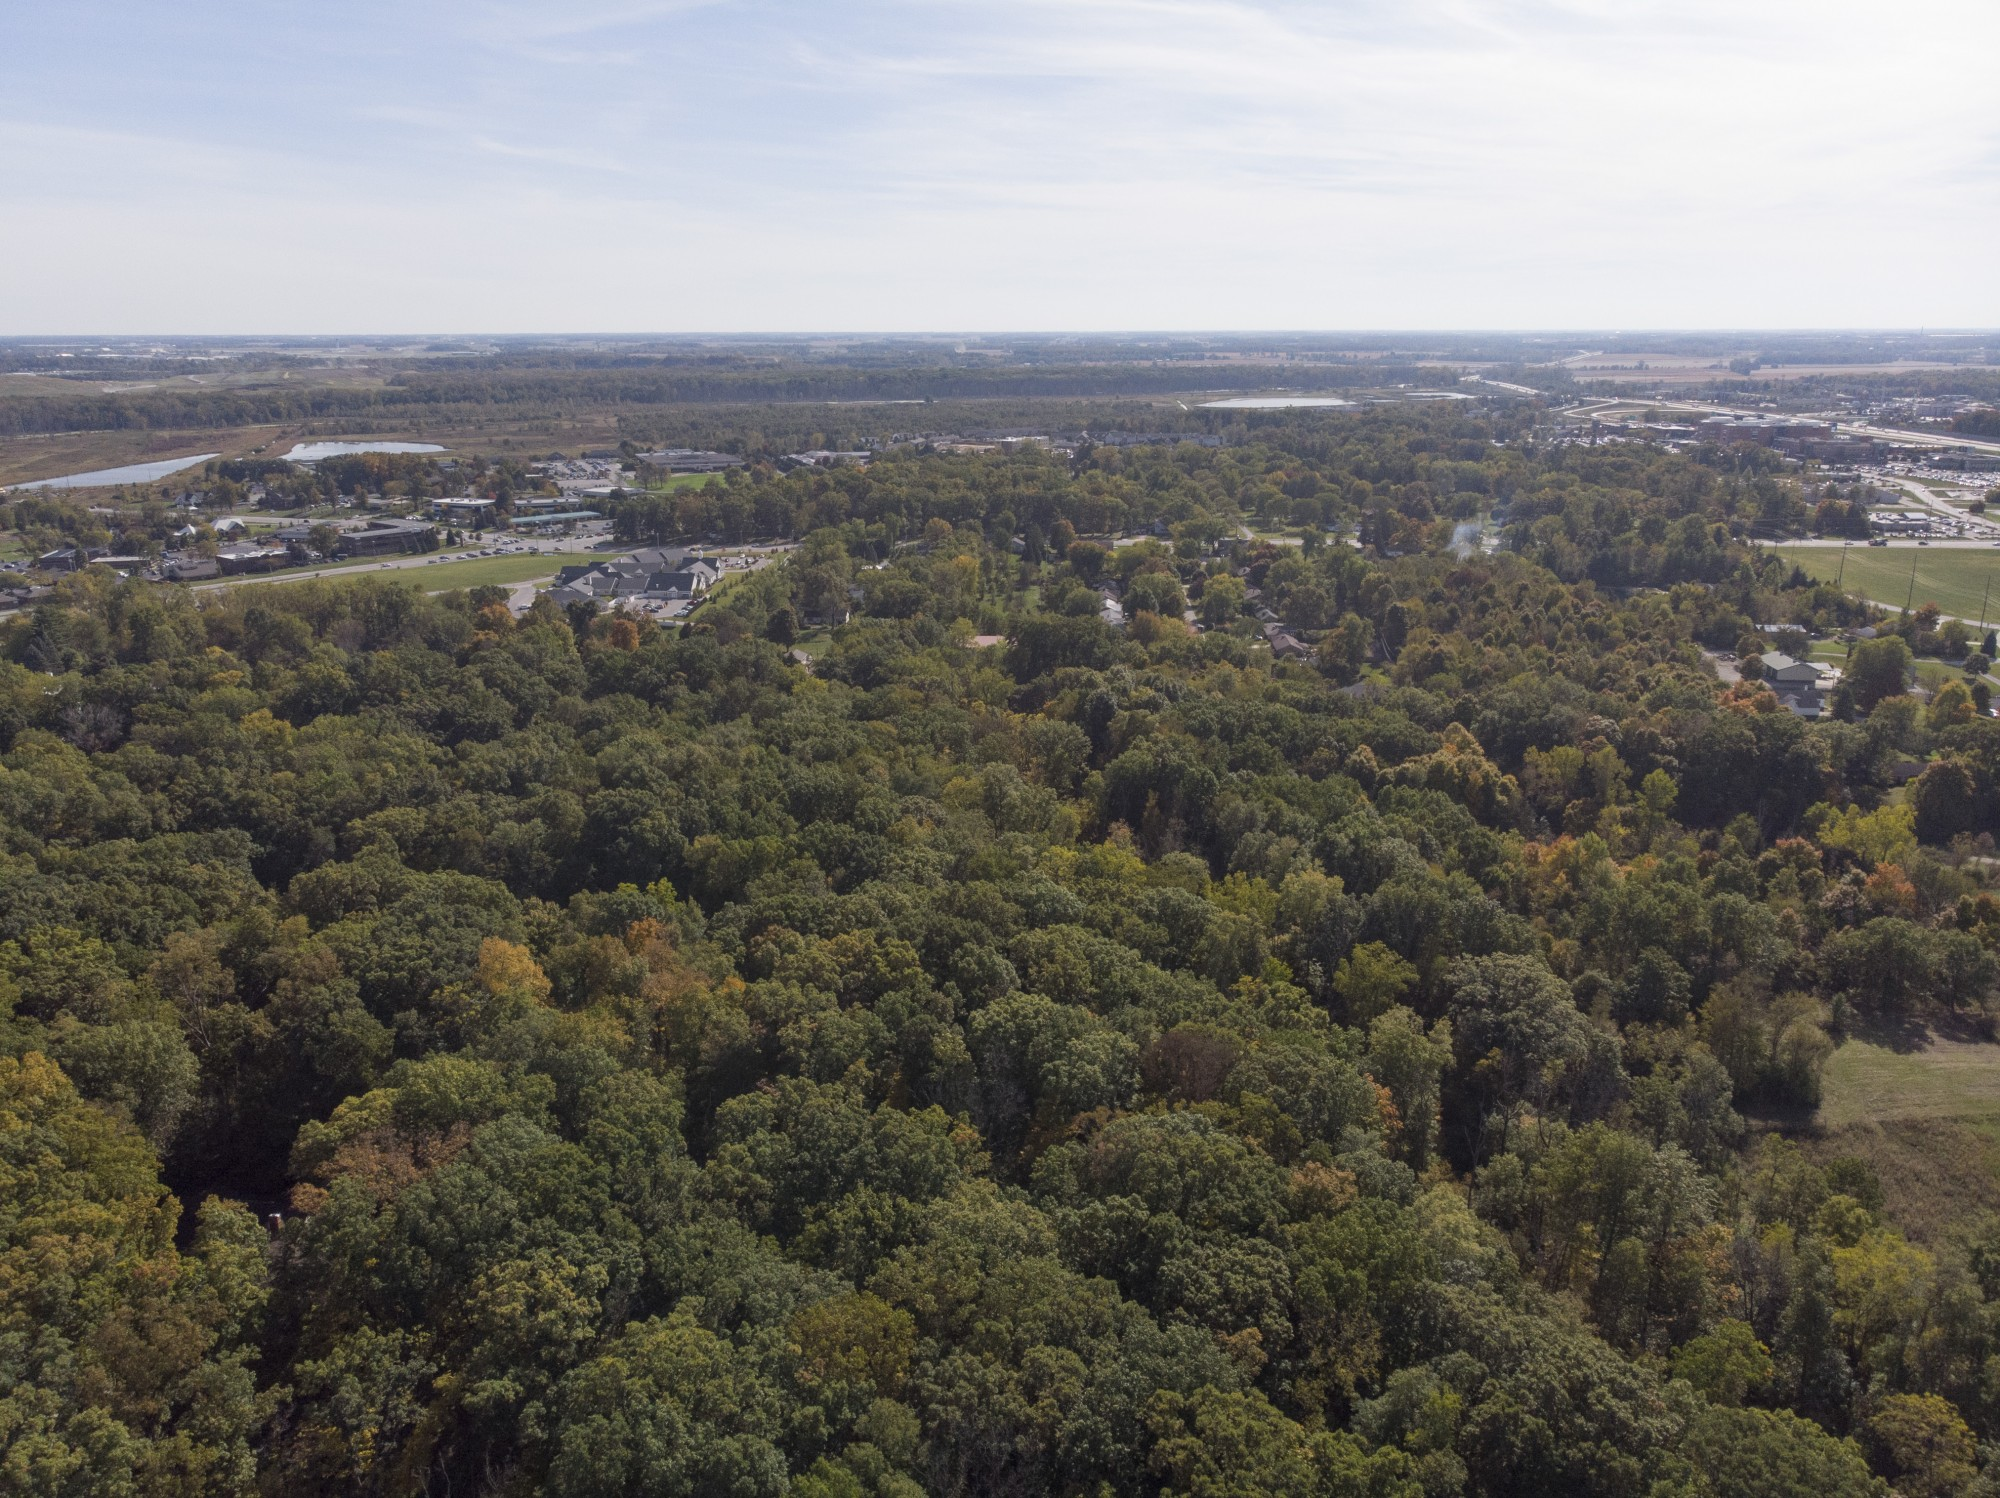 Drone photo of 44 acre site on Aboite Center Rd and Dicke Rd